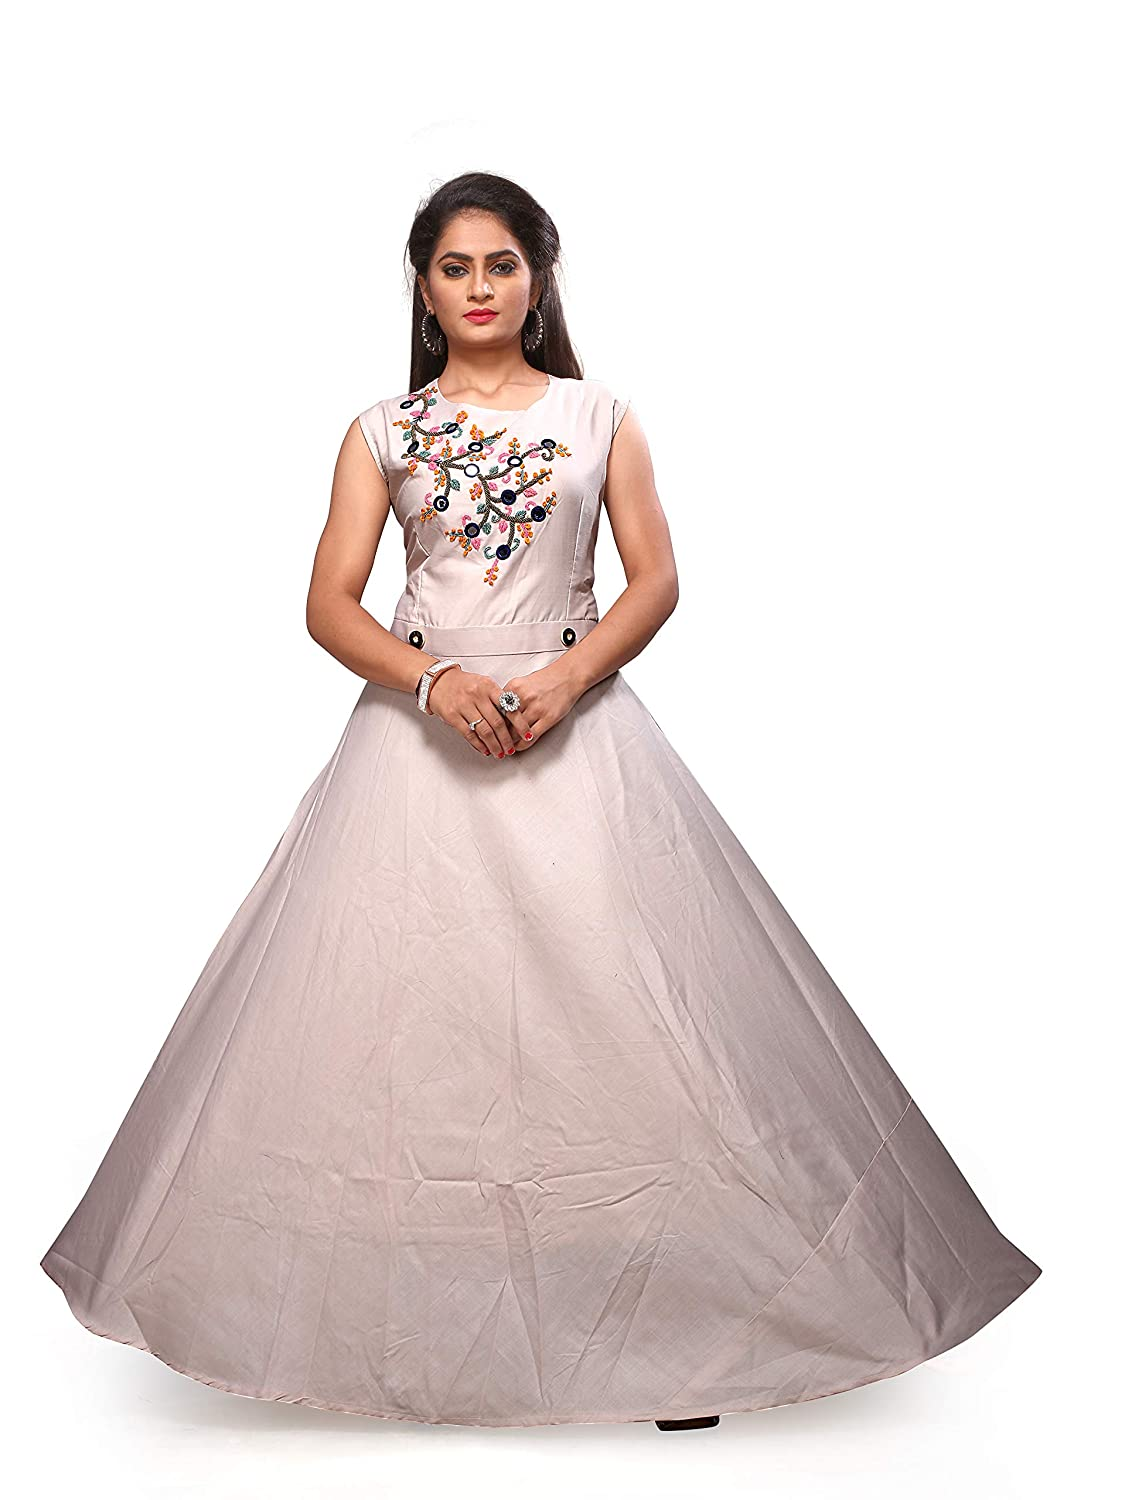 c445e30a97 Manoram Women s Cotton Thread   Zardosi Hand Work Semi - Stitched Gown  Blush Pink Color - Free Size  Amazon.in  Clothing   Accessories